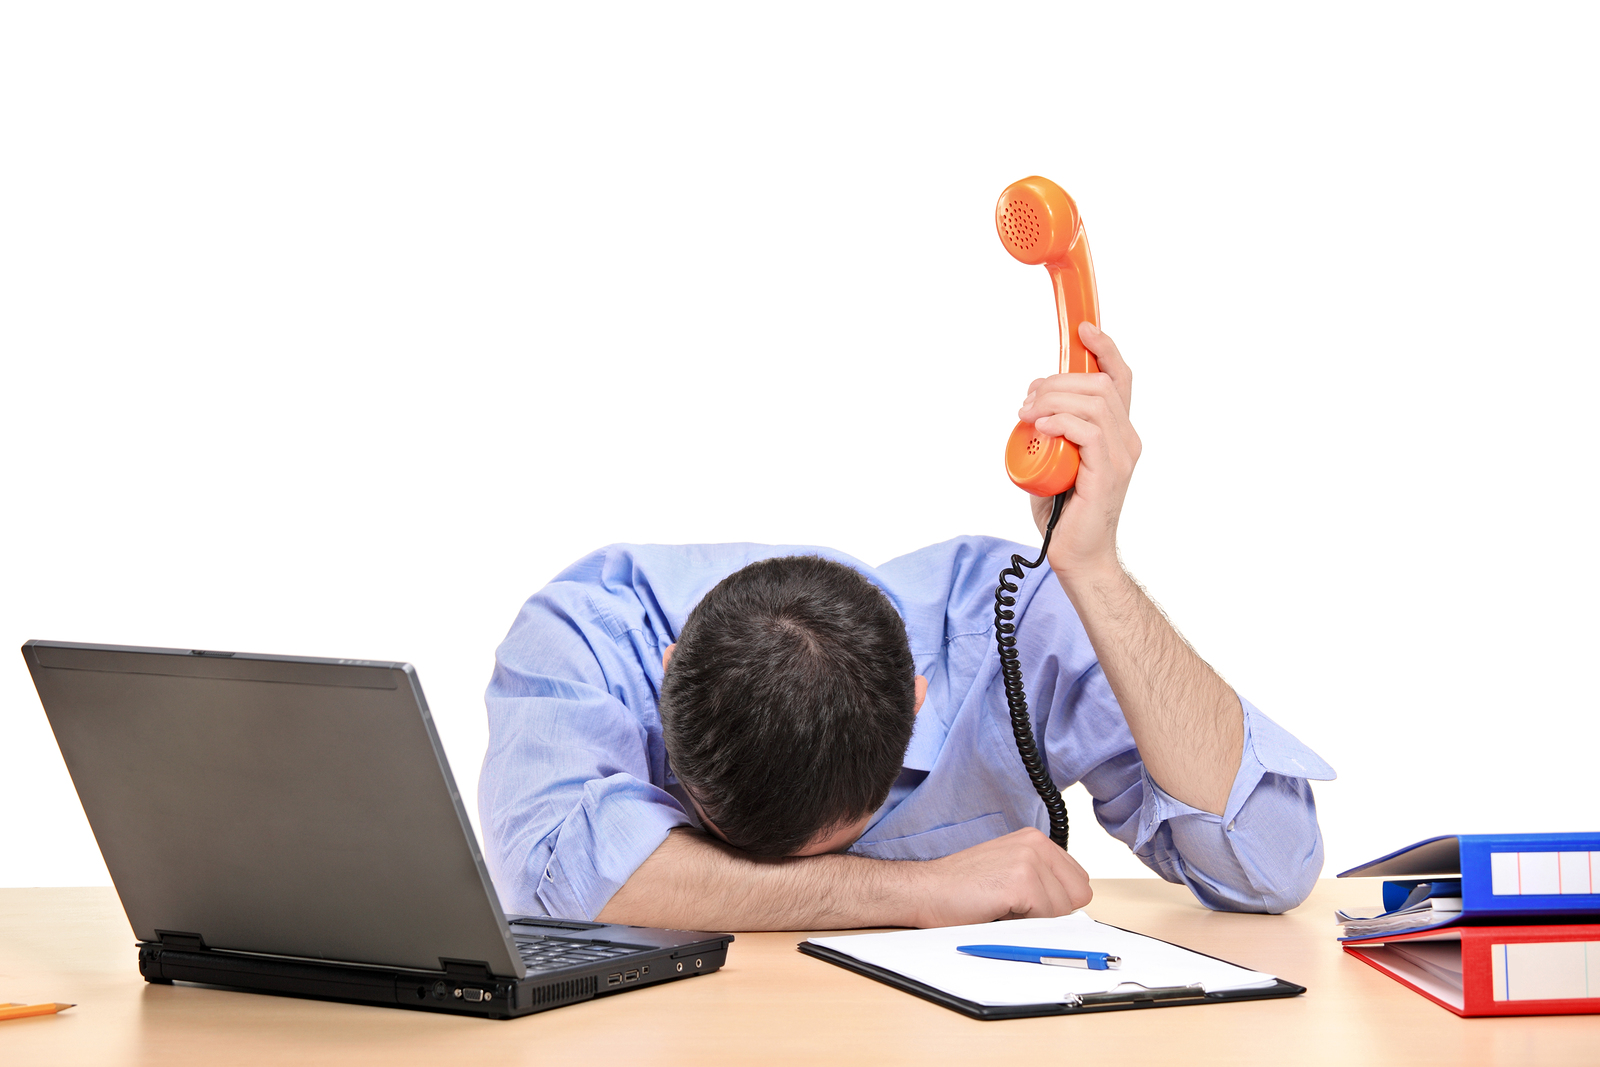 PNG Exhausted Person - 133843